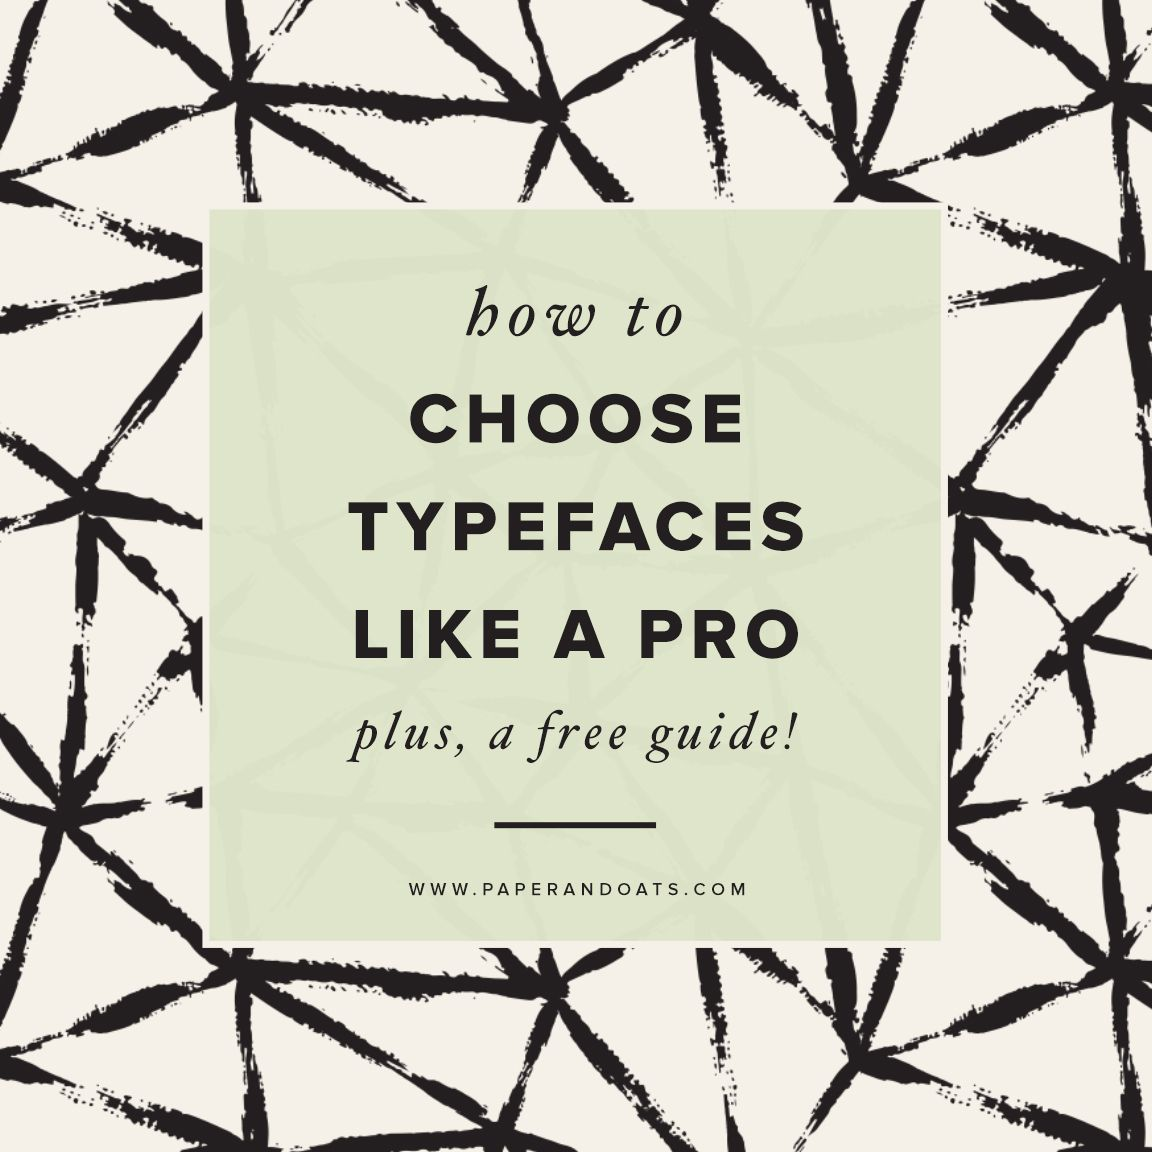 Paper + Oats ? How to choose typefaces like a pro ? plus a free guide!  http://www.paperandoats.com/blog/how-to-choose-typefaces-like-a-pro-plus-a-free-guide